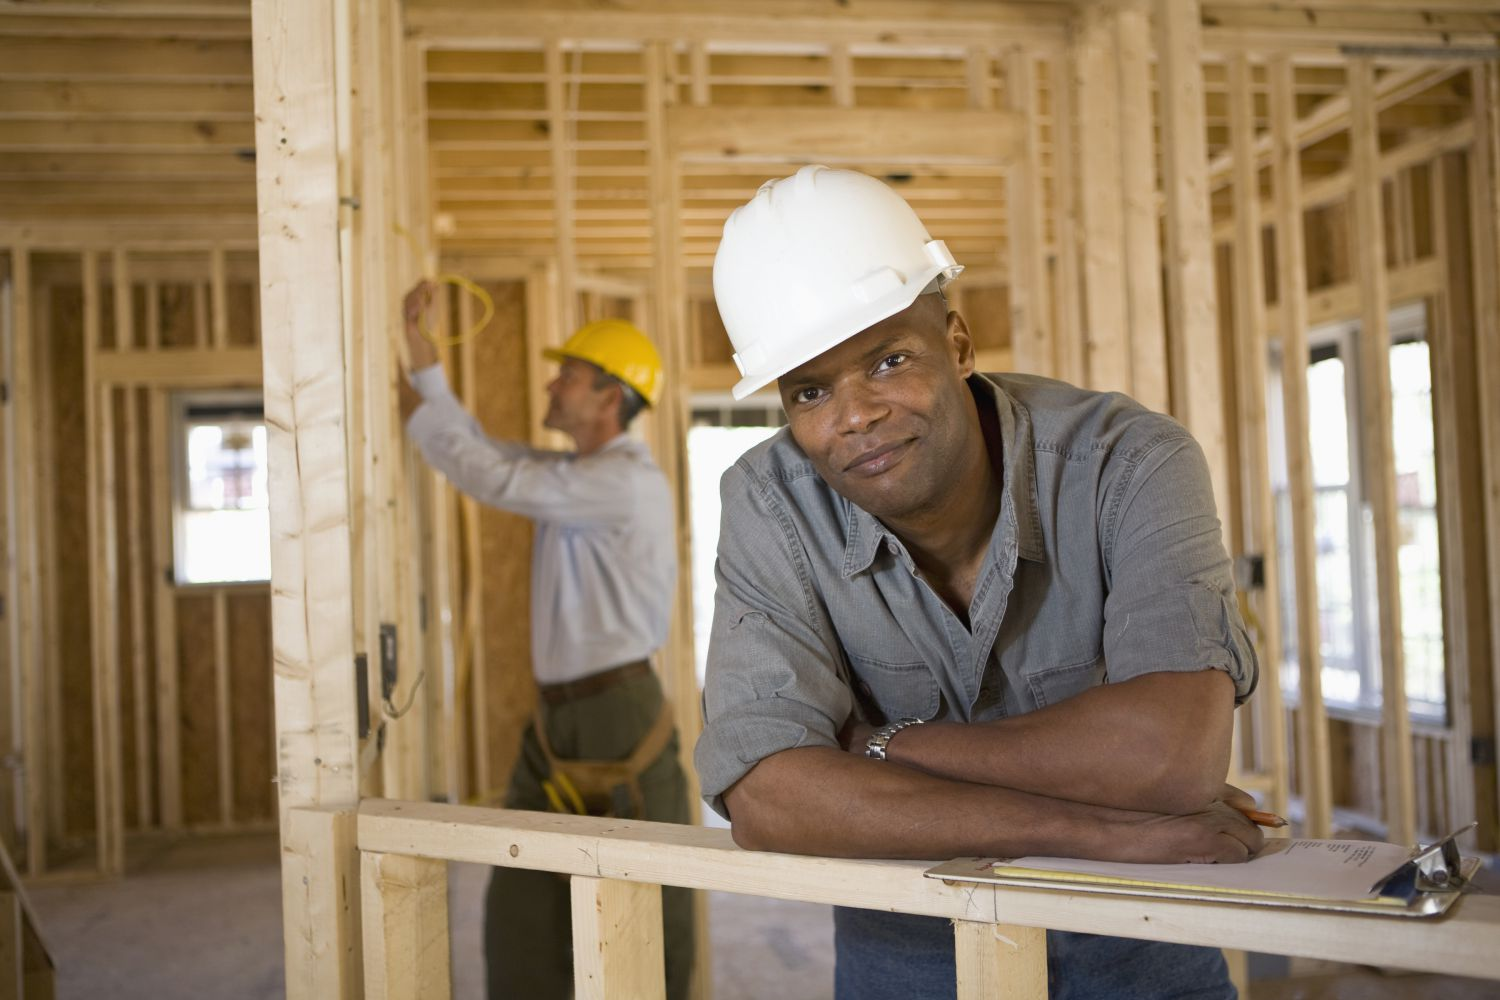 Workers providing home renovations in Escambia County, AL